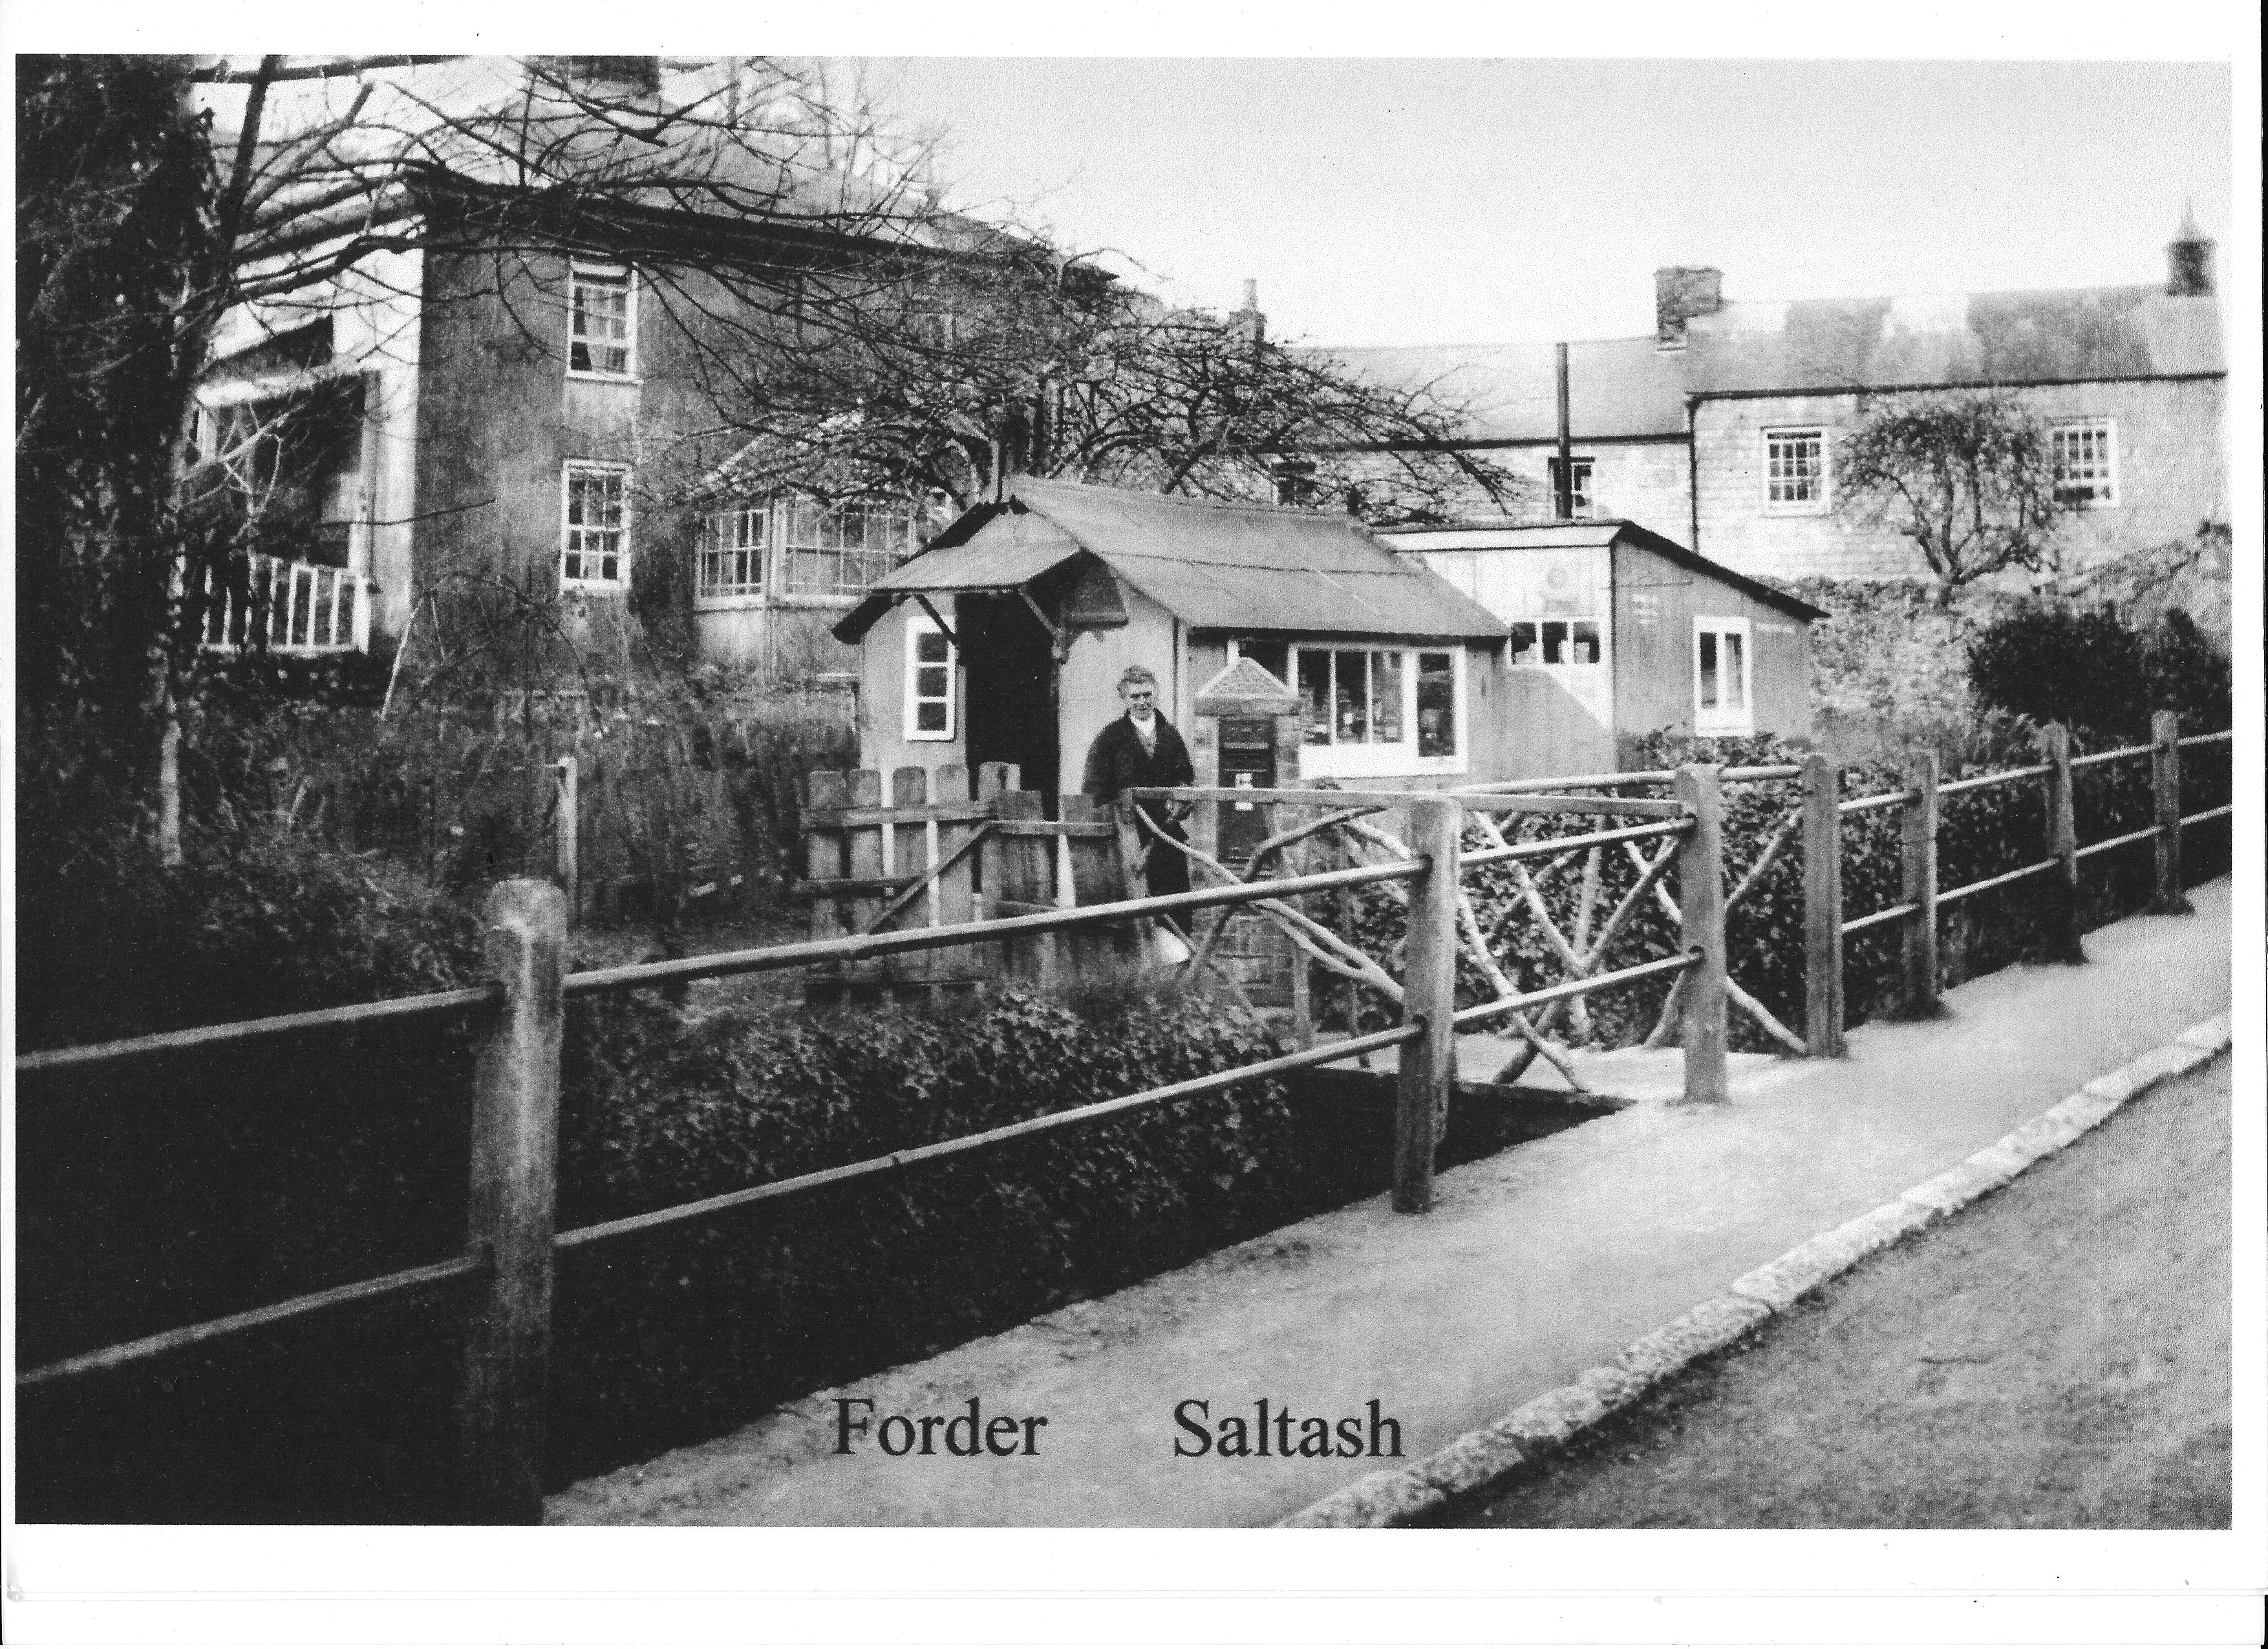 Forder Villa with old post office  -  when?